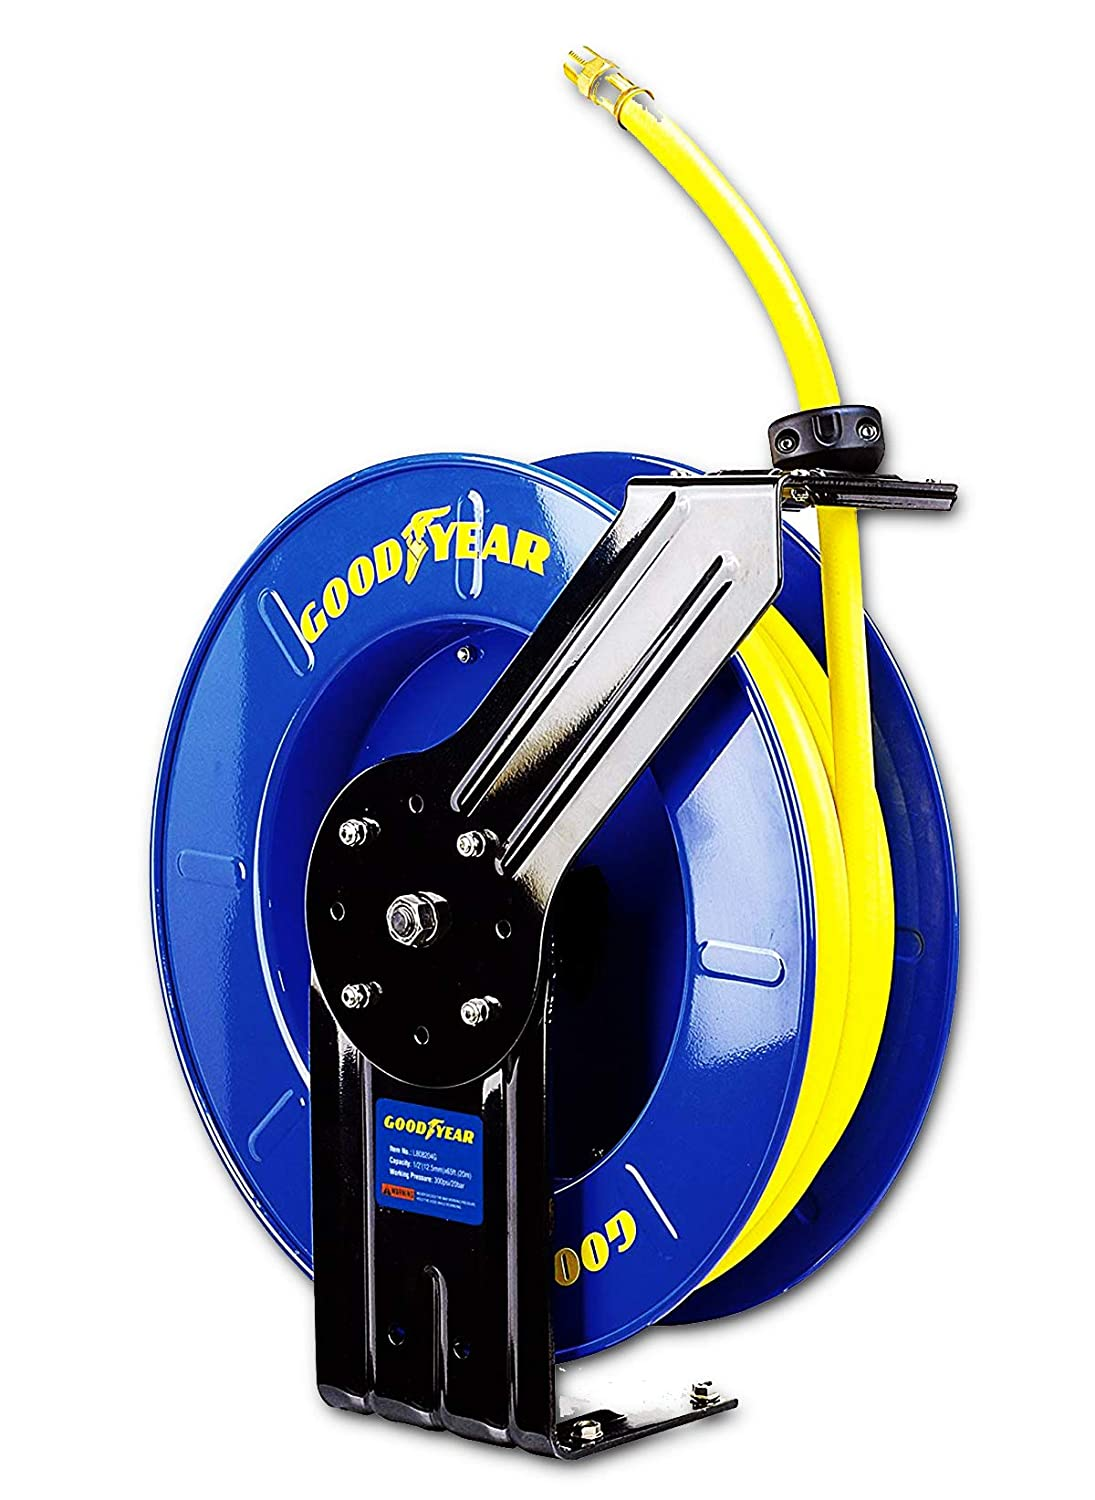 """GOODYEAR Air/Water Hose Reel Retractable Spring Driven 1/2"""" Inch x 65' Feet Extra Long Premium Commercial SBR Hose Max 300 Psi Reinforced Steel Construction Heavy Duty Industrial Single Arm & Base"""